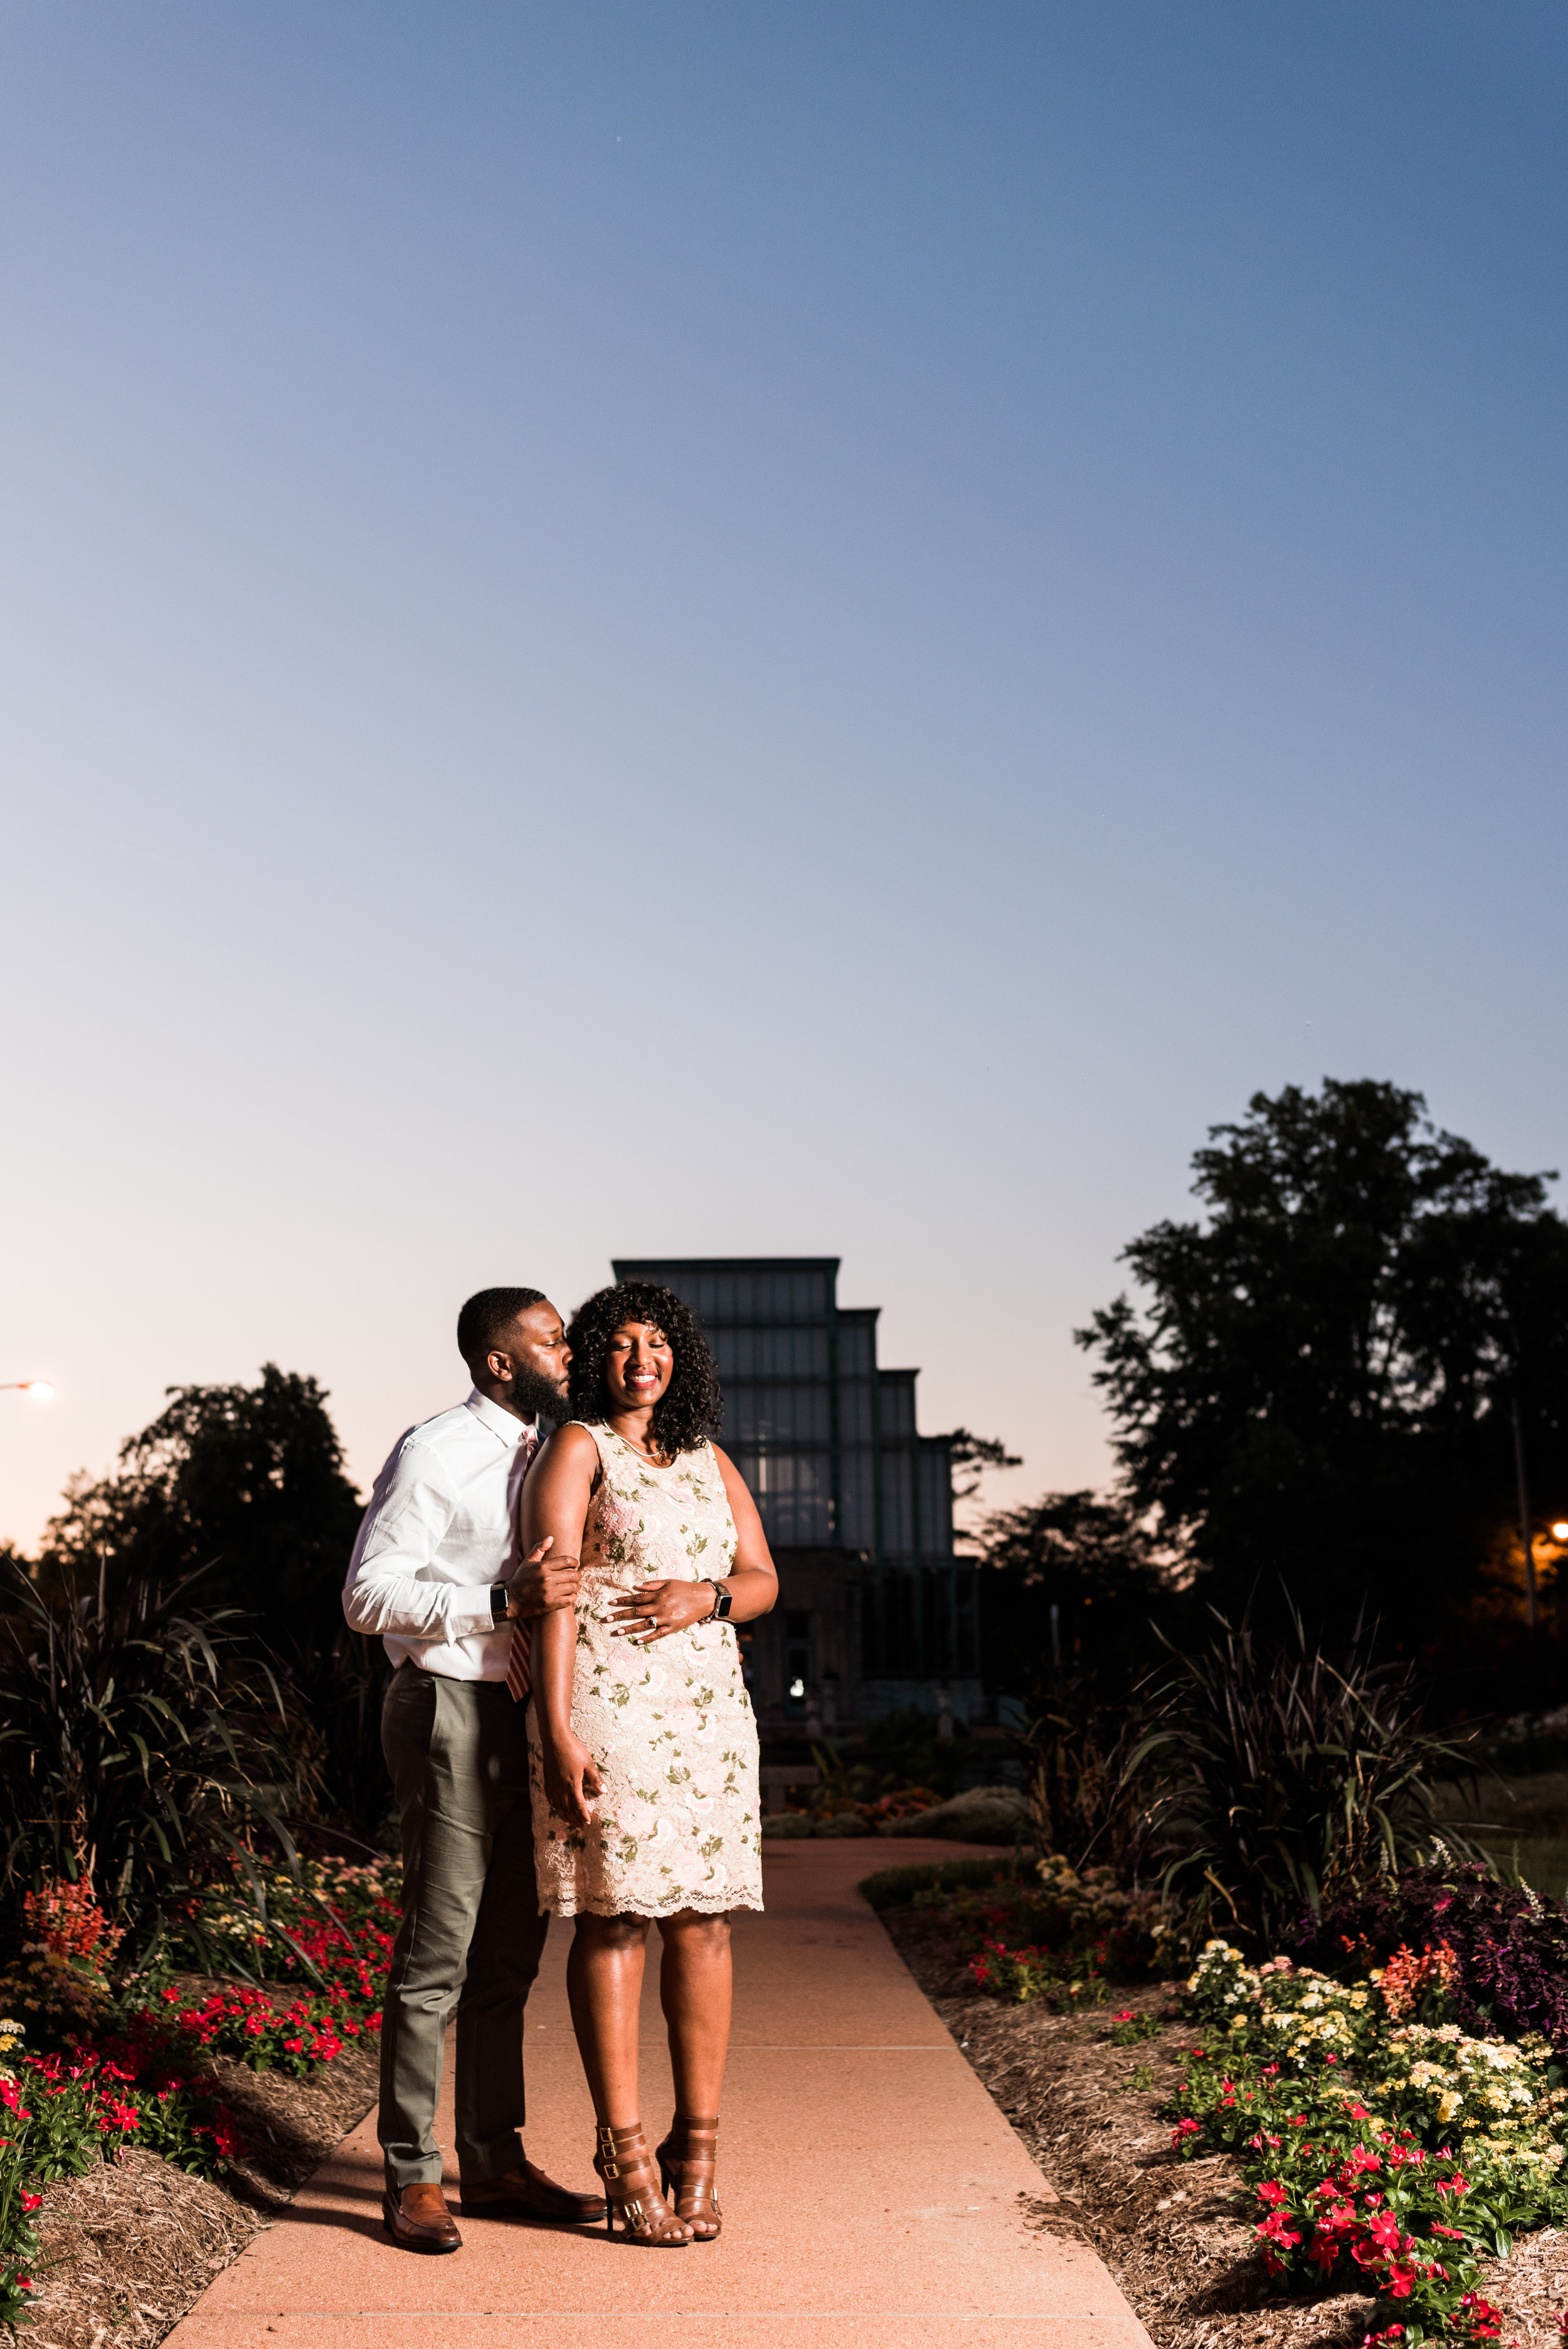 st-louis-wedding-photographer-jewel-box-proposal-79.jpg